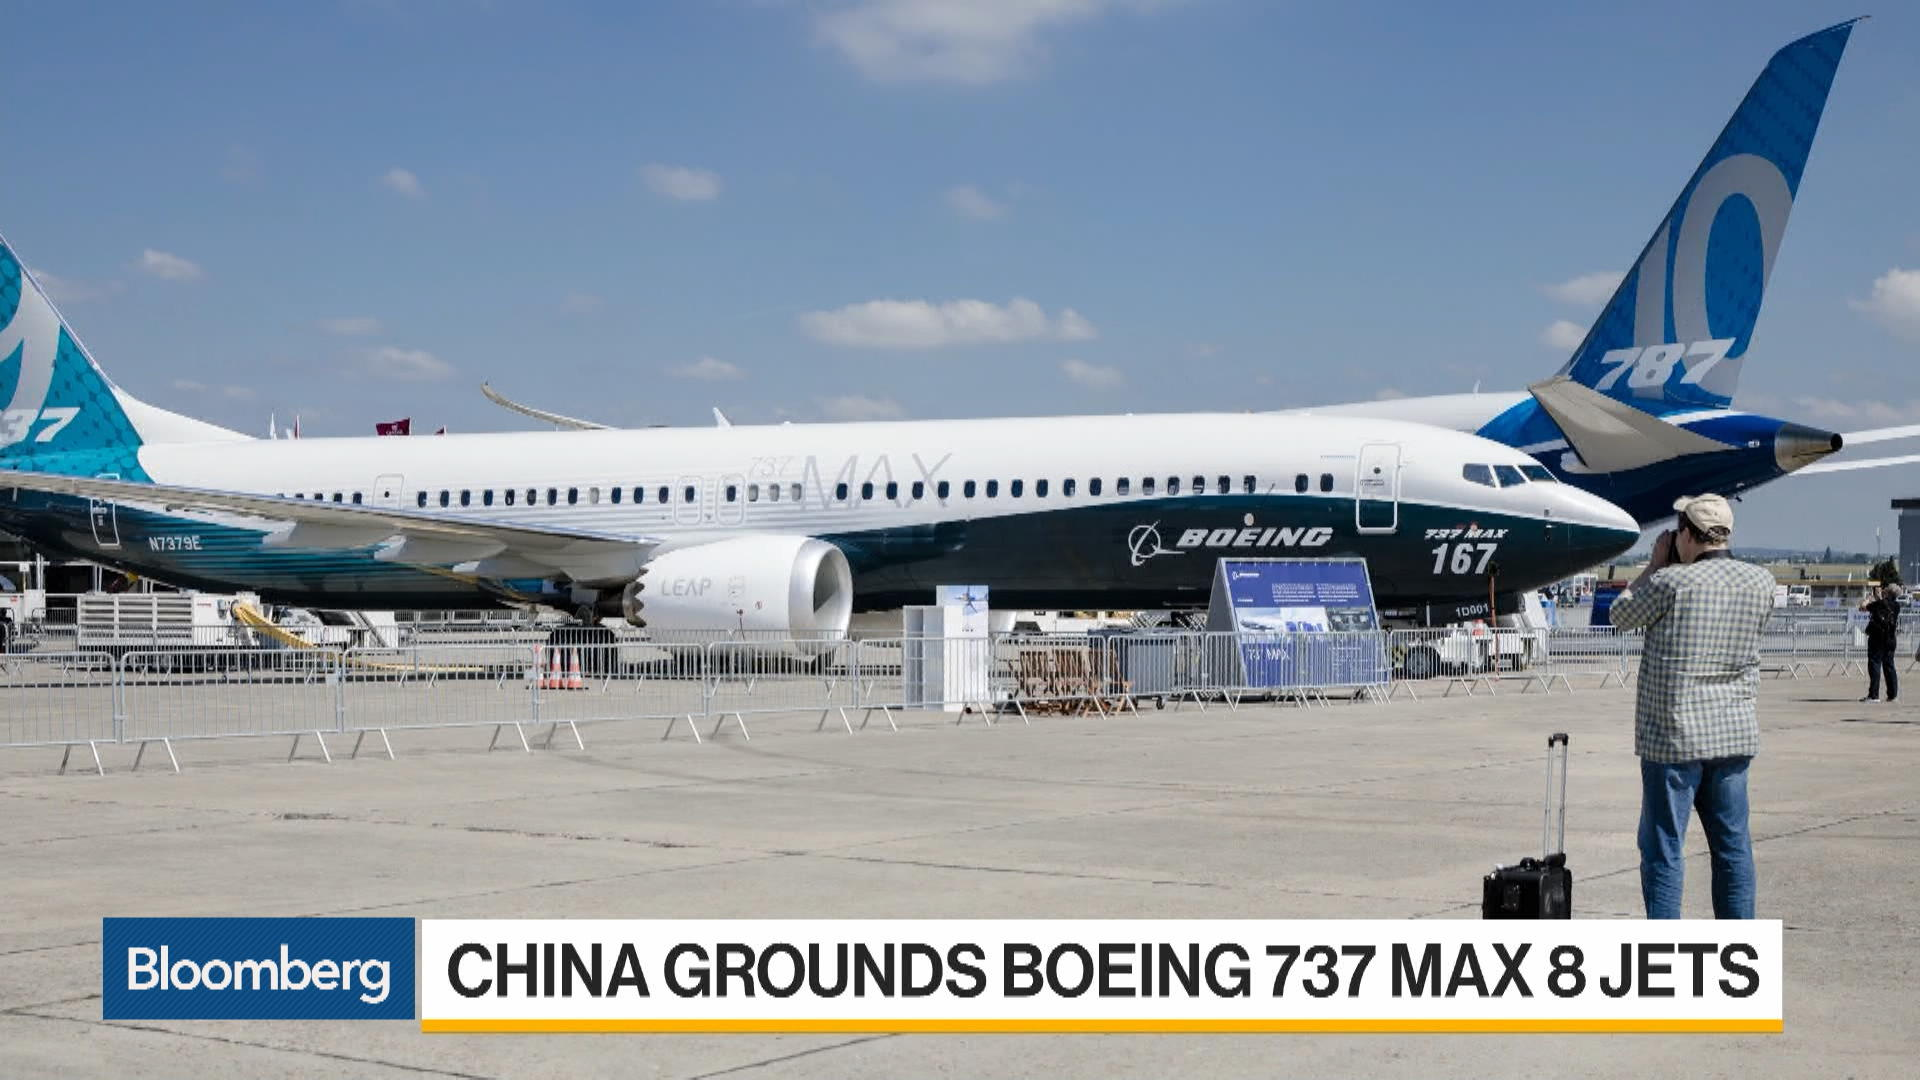 China Grounds Boeing 737 Max Jets After Ethiopian Airlines